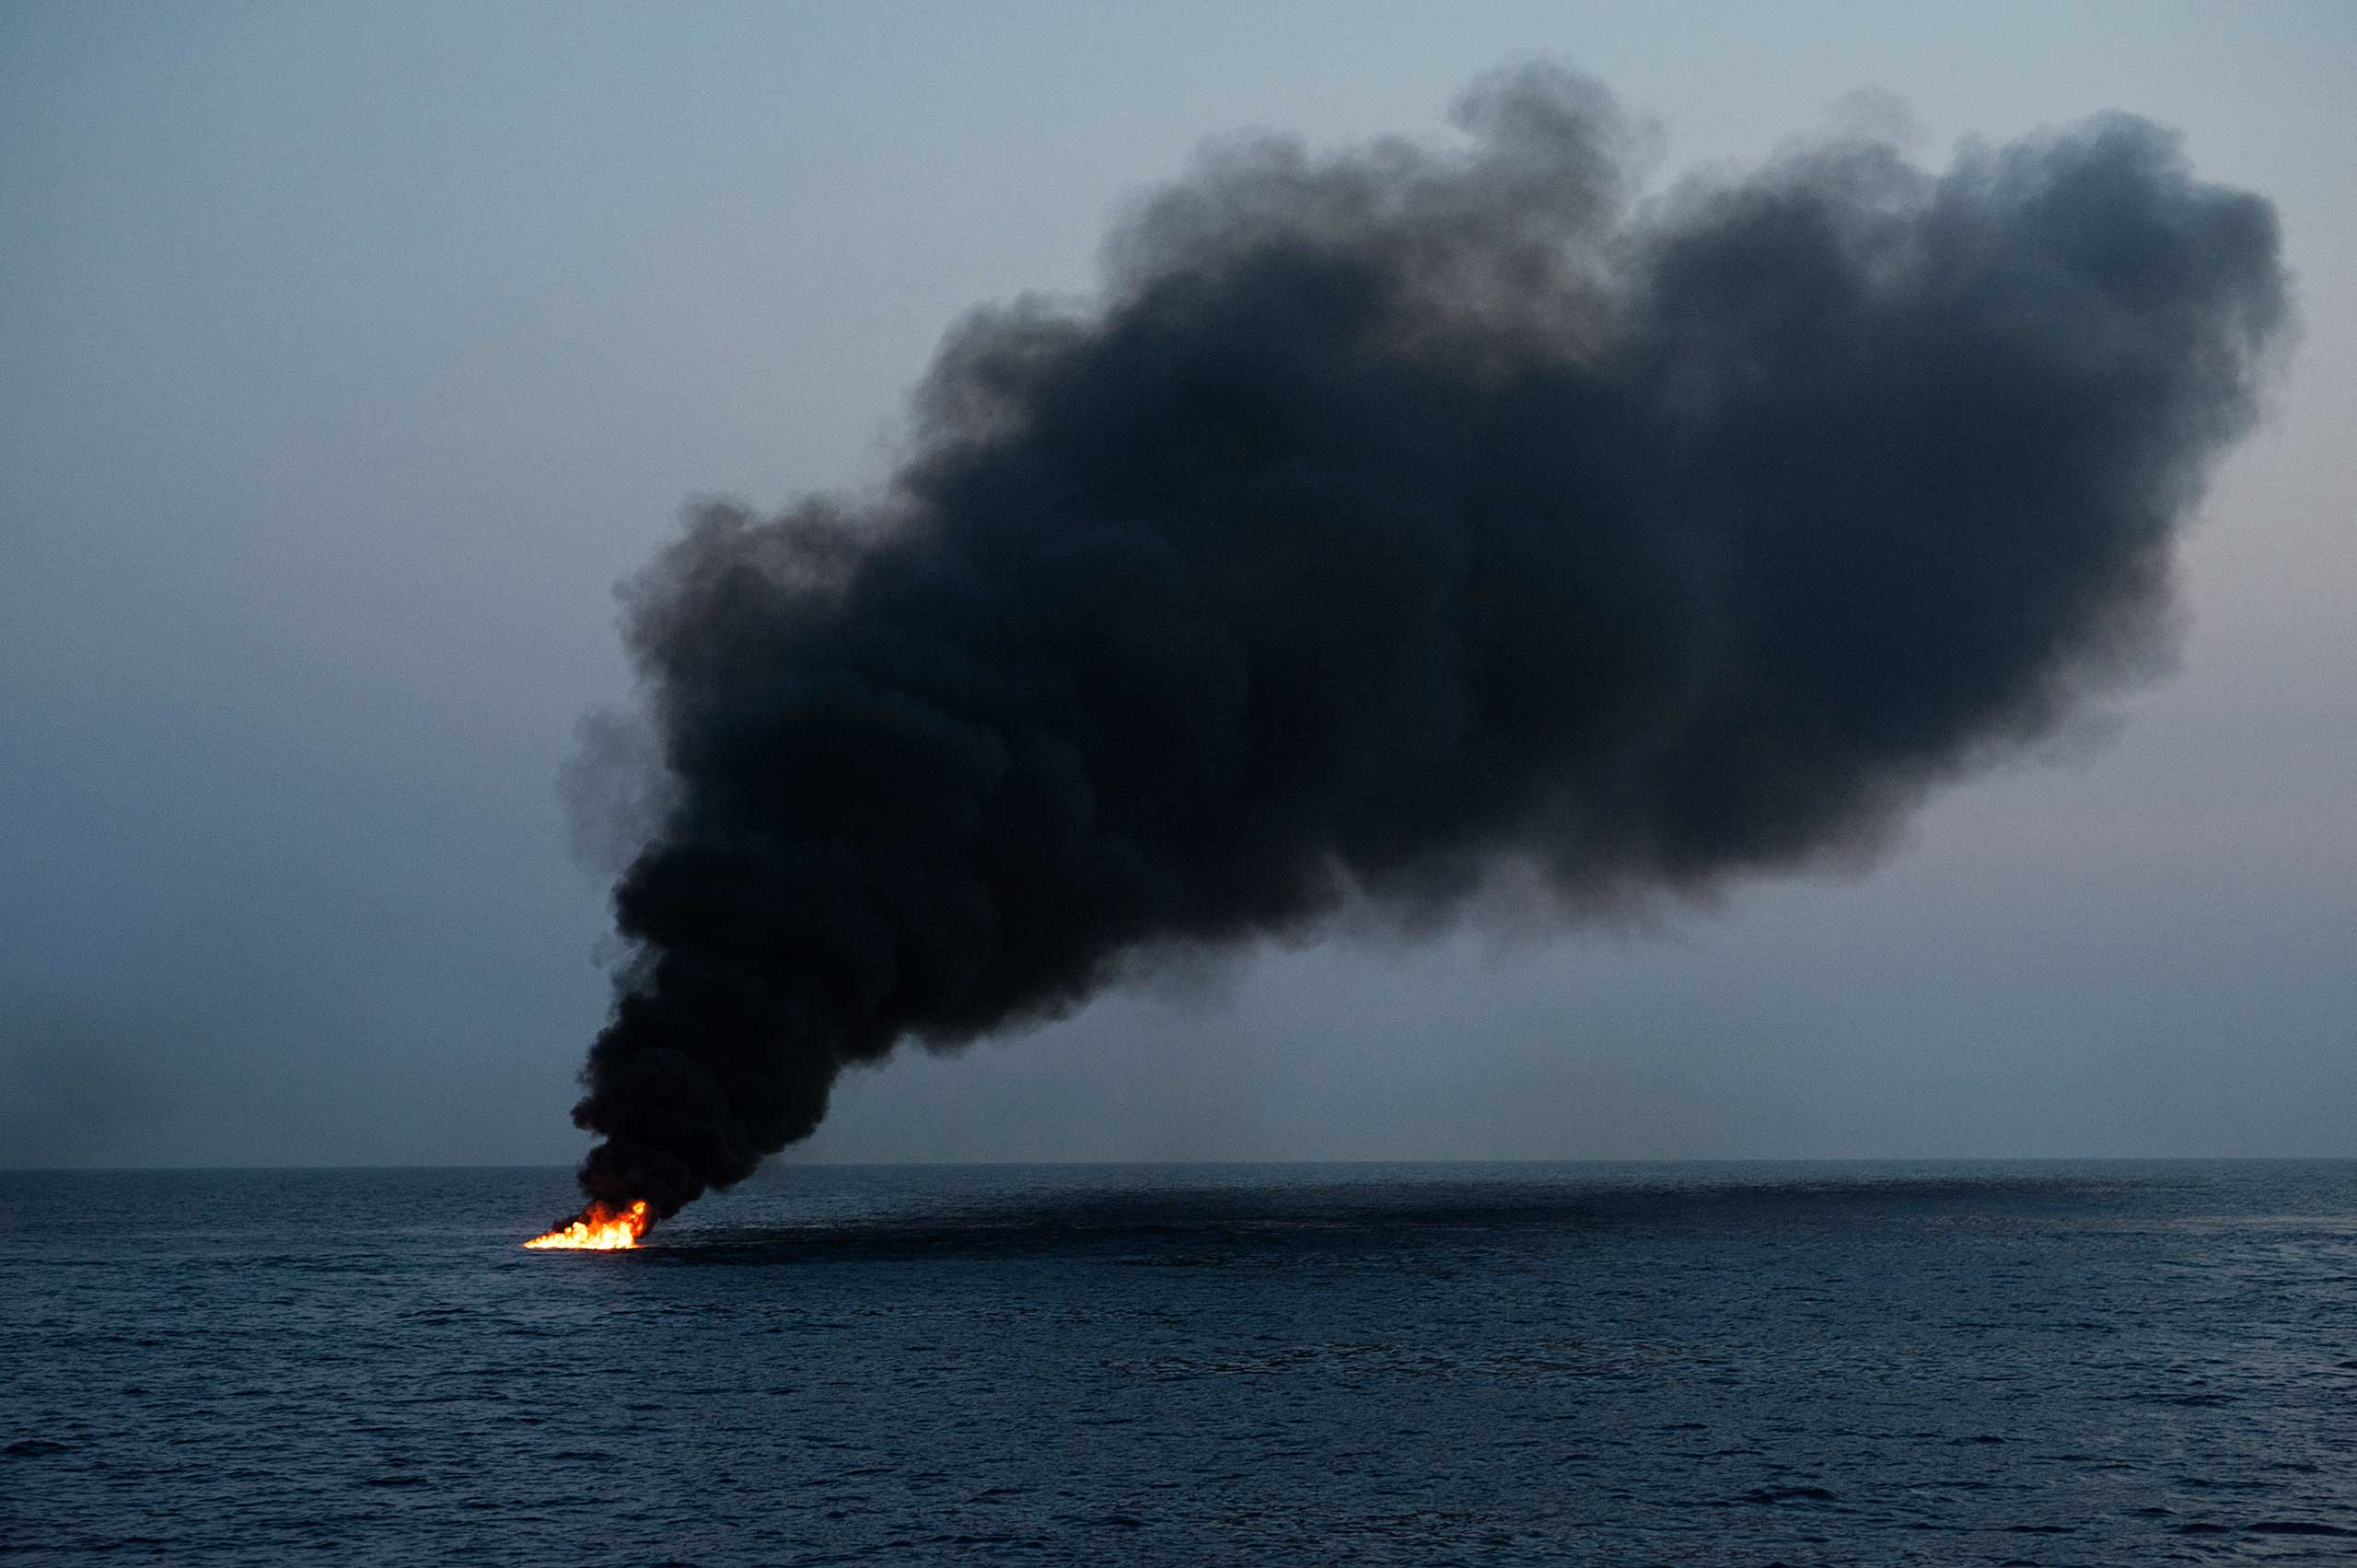 Smoke billows from a migrant boat, set ablaze by Italian authorities so other smugglers don't use it, after they rescued more than 100 people some 120 miles off the Italian coast on June 6, 2015.